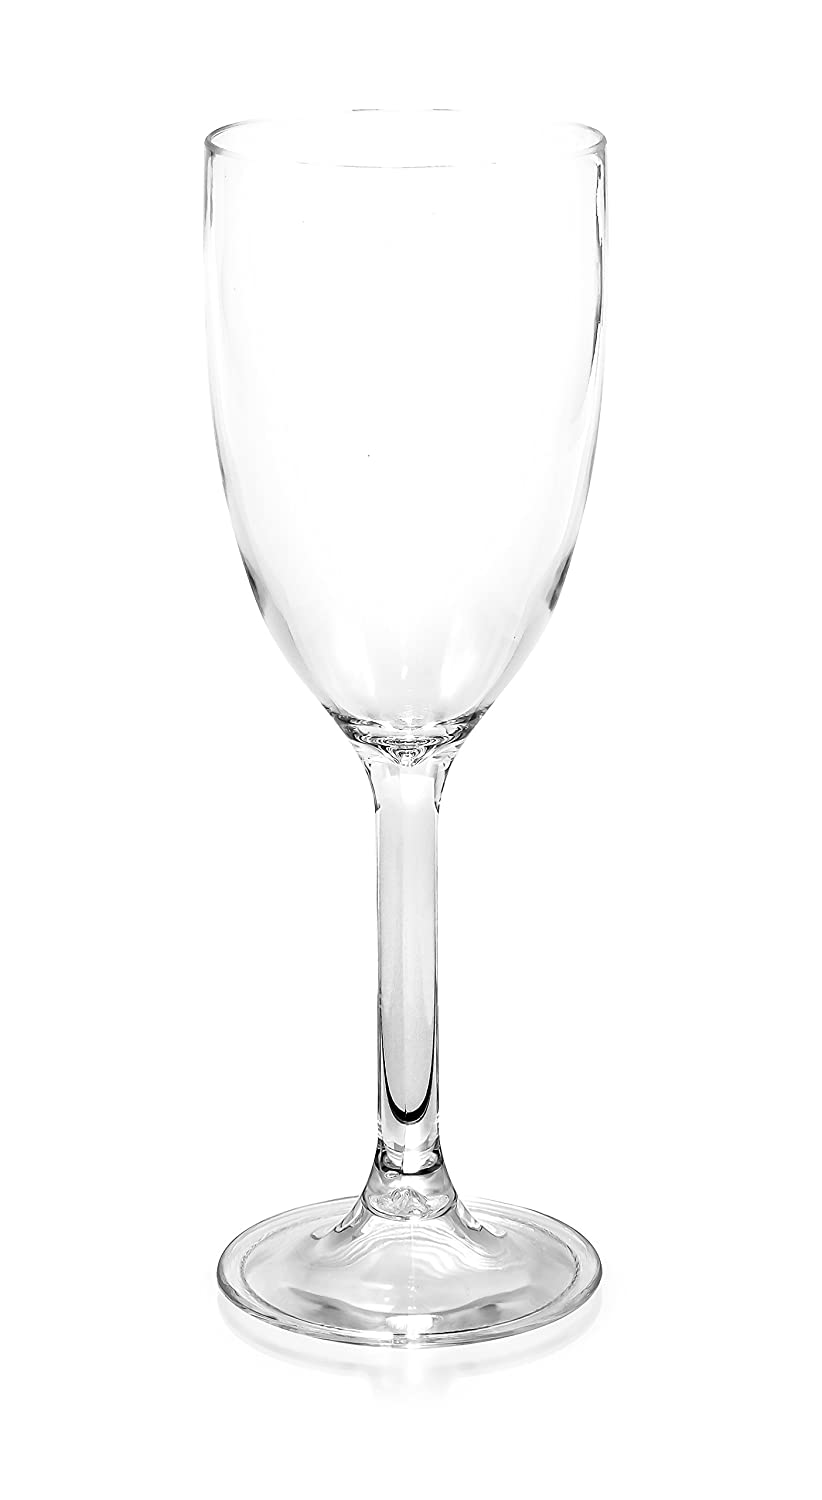 Camco 43862 Polycarbonate 9 oz. Capacity Wine Glass, (Pack of 8)